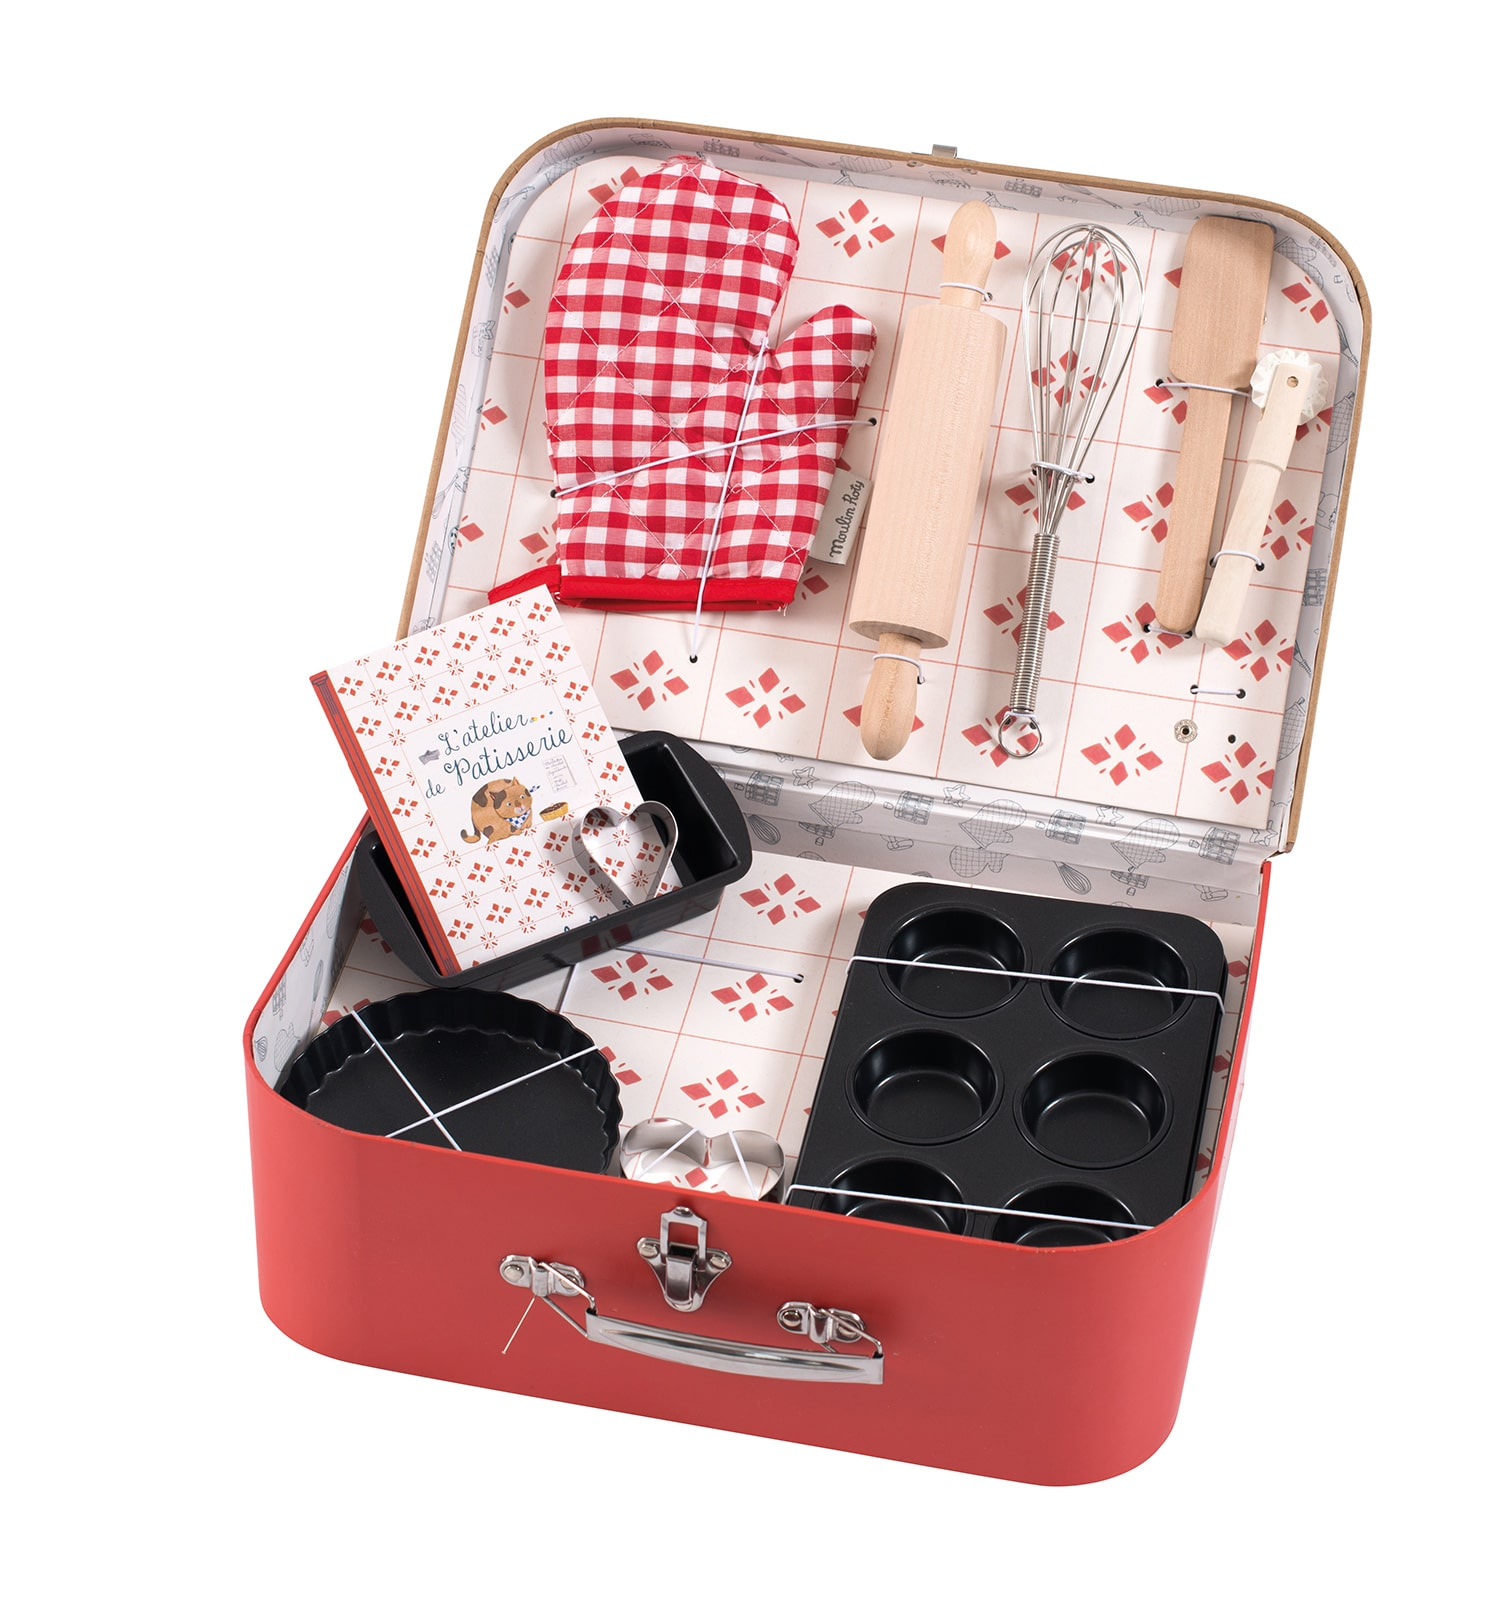 Suitcase of toy baking utensils - Moulin Roty 710 405